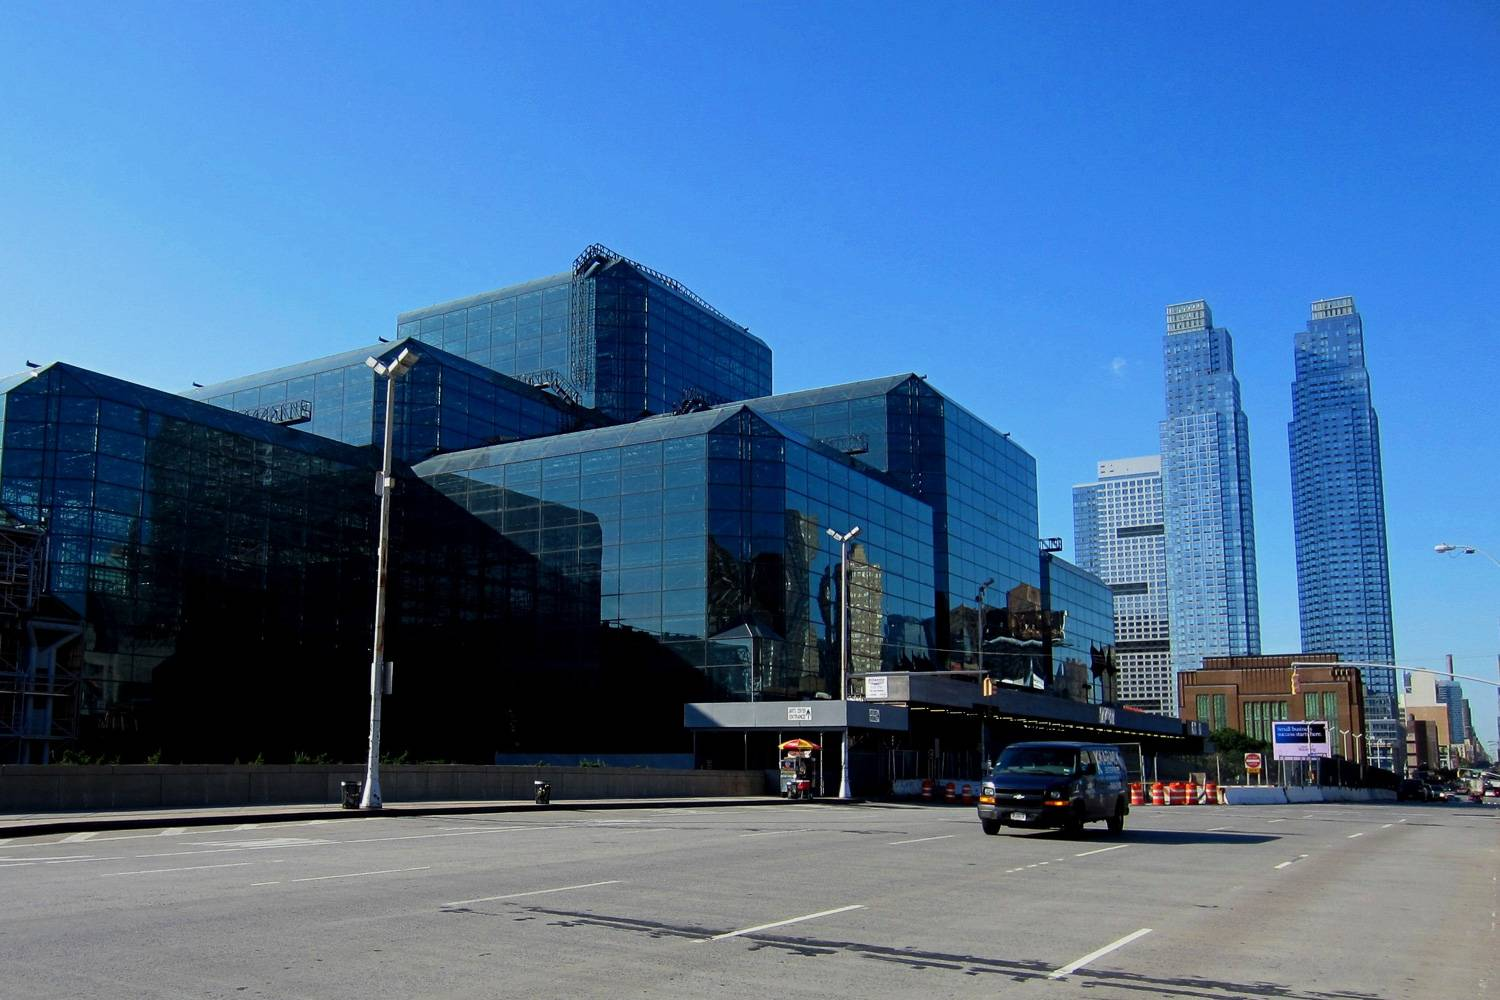 Image of the outside of the Jacob K. Javits Convention Center that is mainly constructed out of blue glass windows.